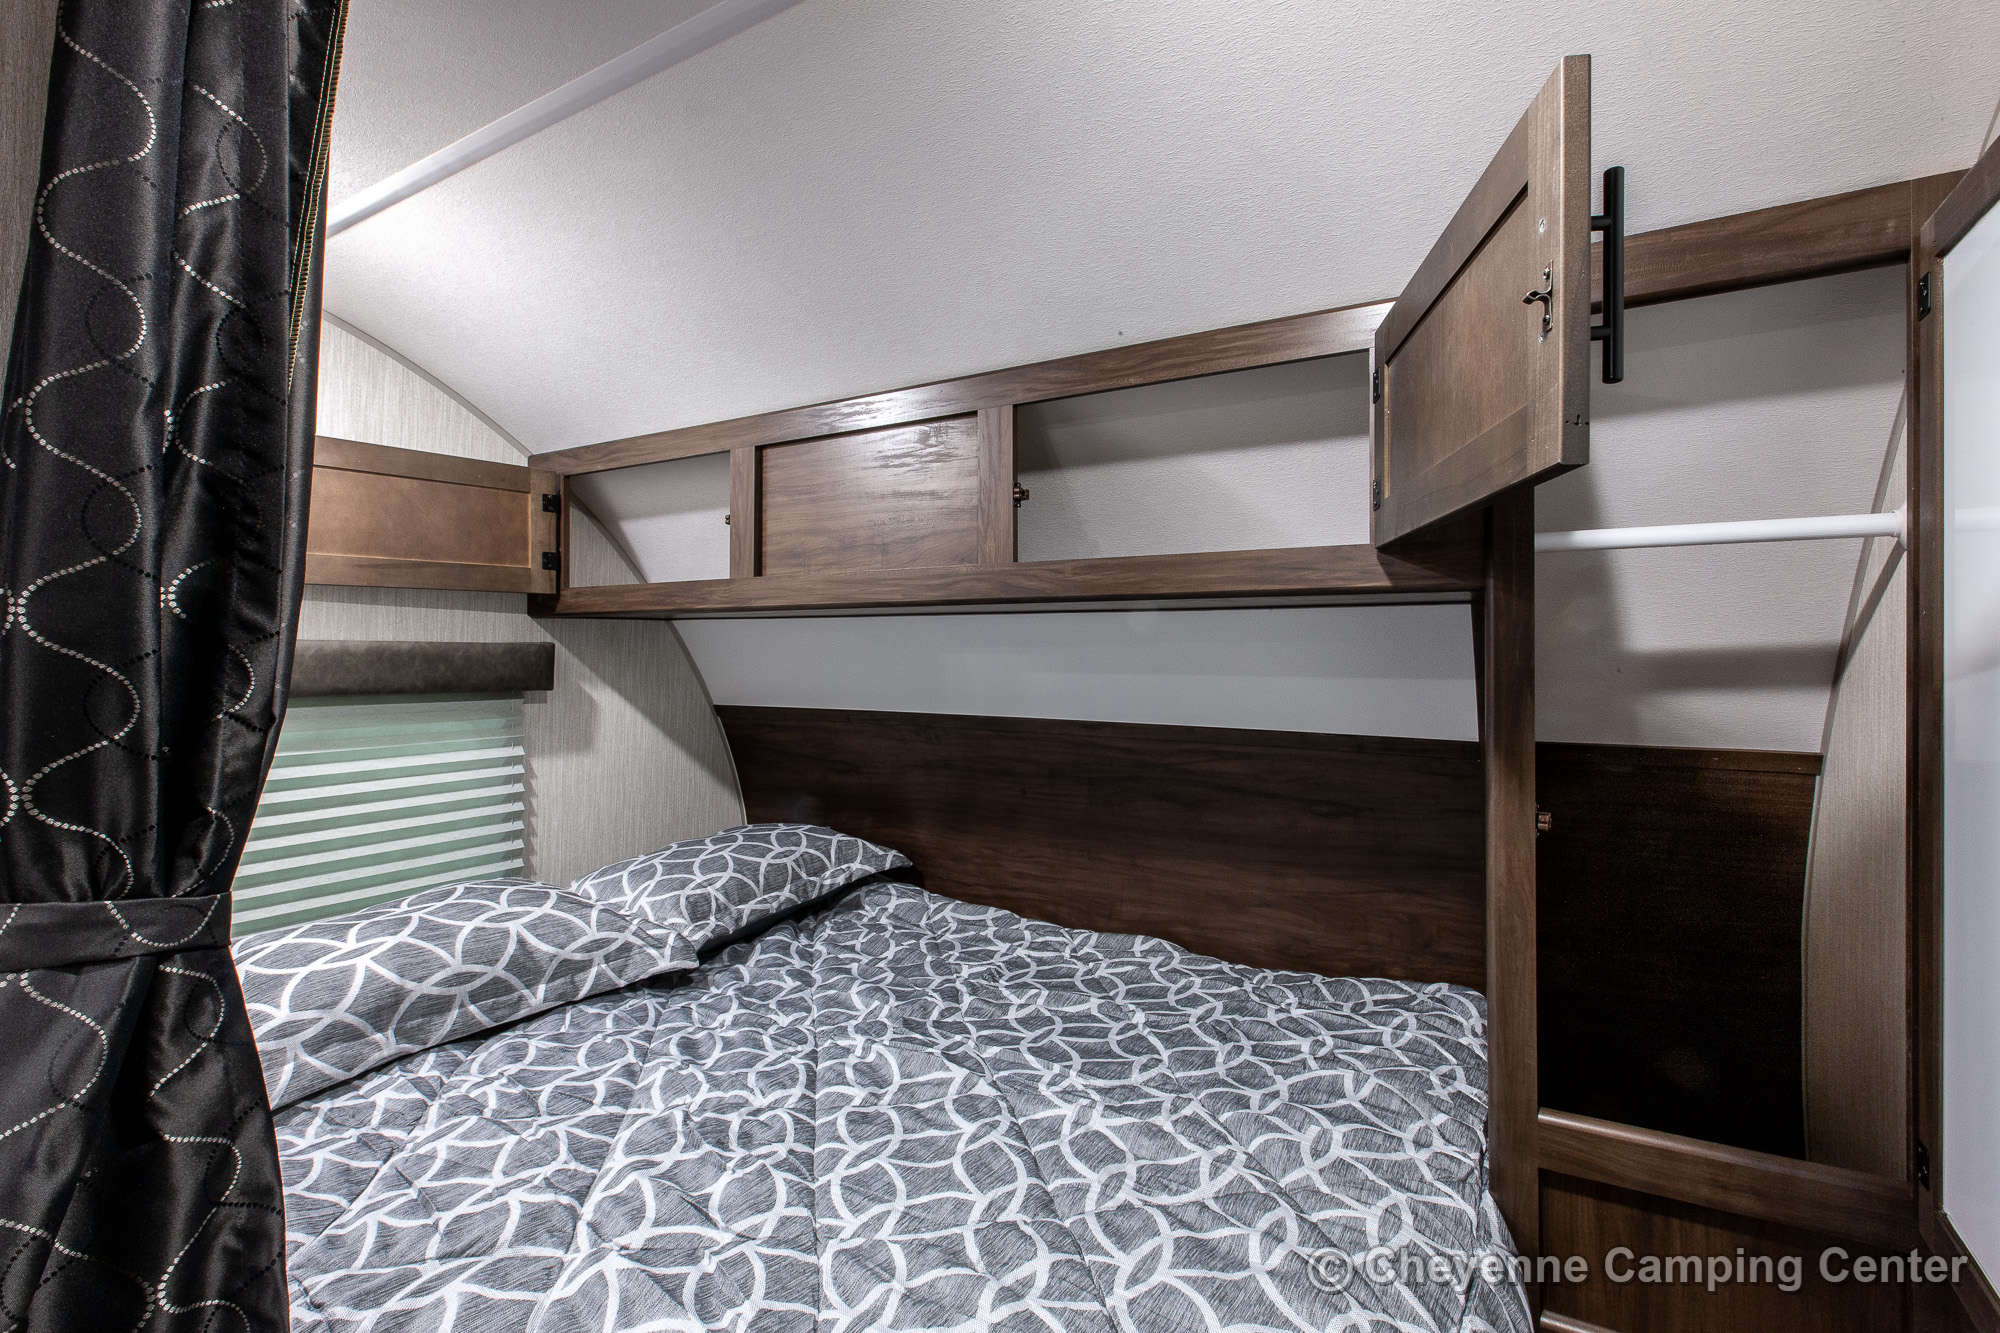 2020 Forest River Cherokee Grey Wolf 19RR Toy Hauler Travel Trailer Interior Image